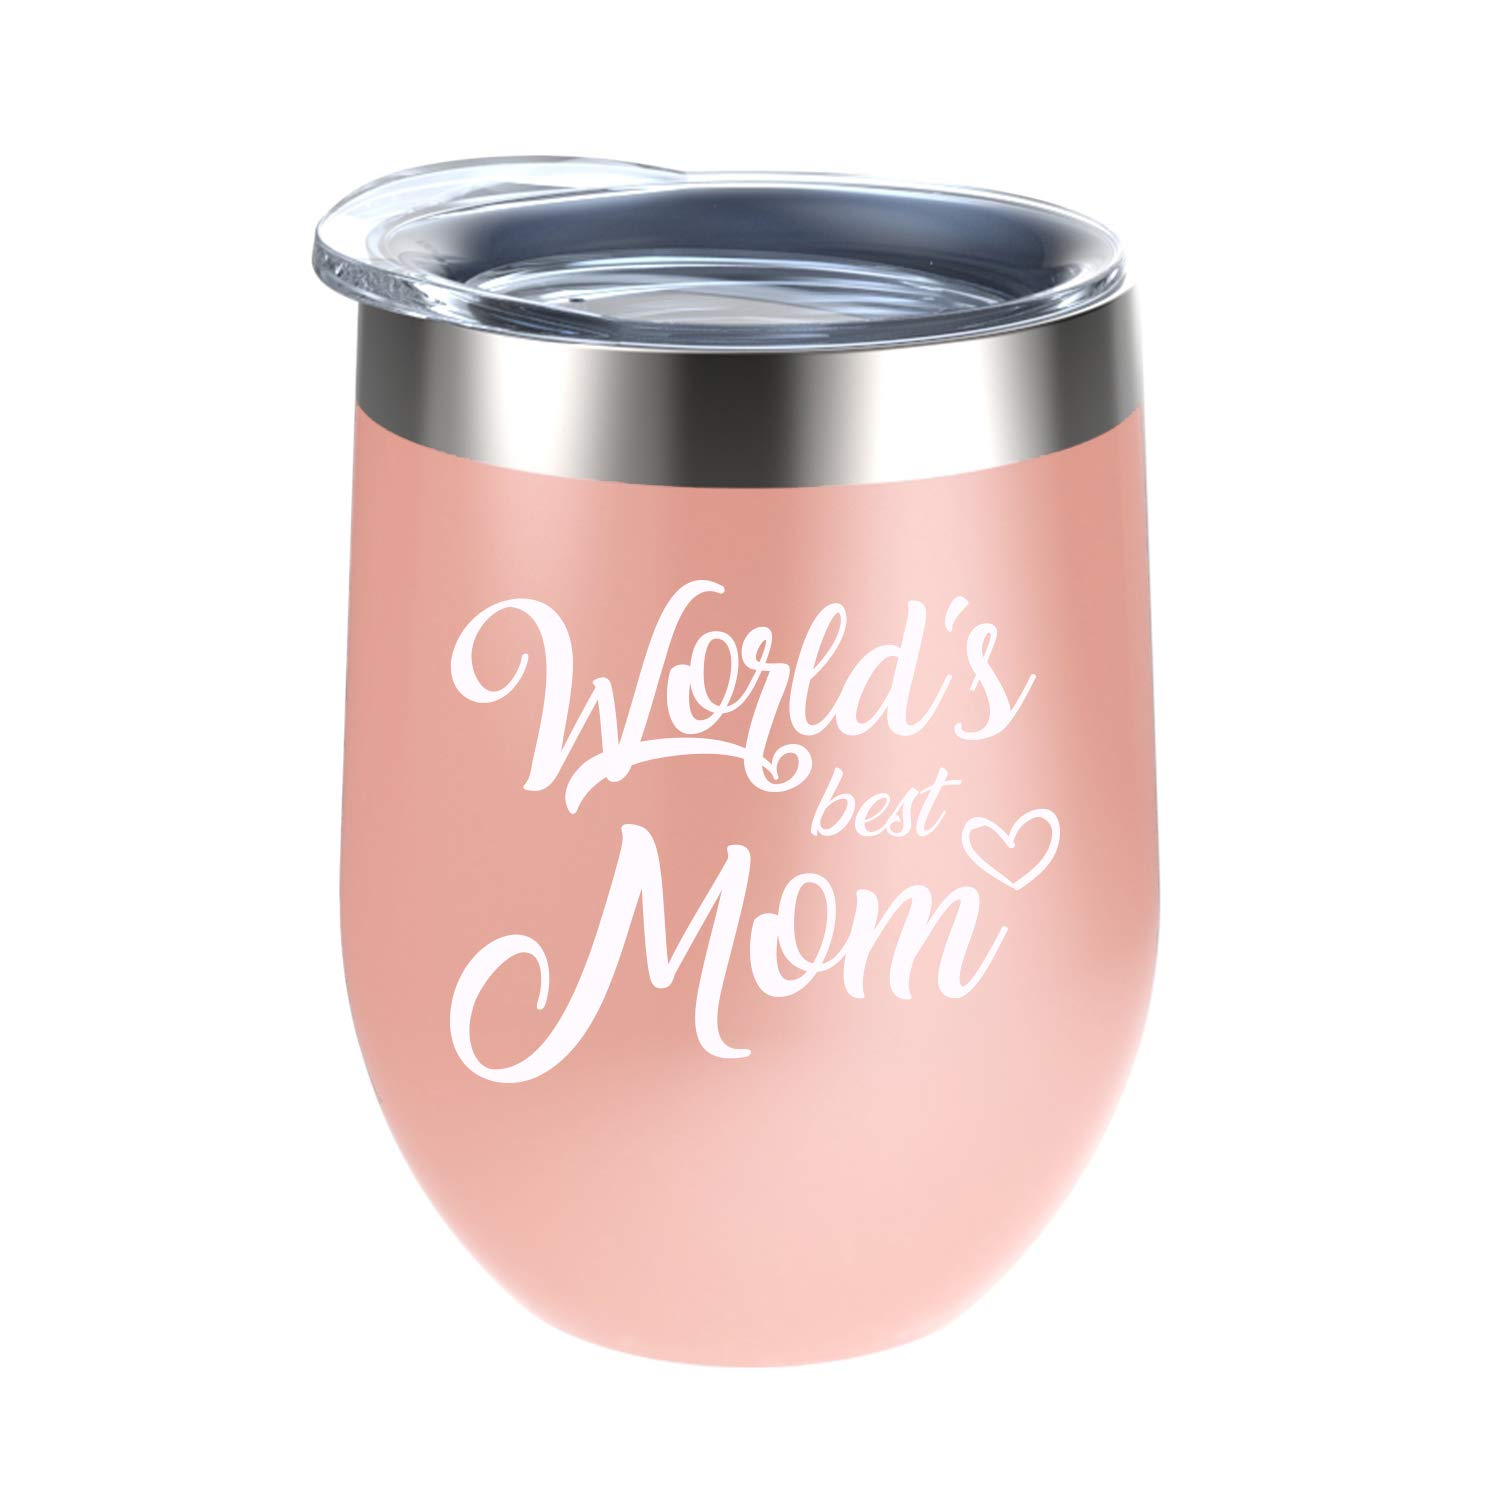 Alexanta Mom Tumbler - World's Best Mom - Christmas Gifts for Mom - Mother's Day Gifts for Mom, Mom Birthday Gifts, Mom Gifts from Daughter, Son, New Mom Gifts, Wife Gifts, Mom to be Gifts